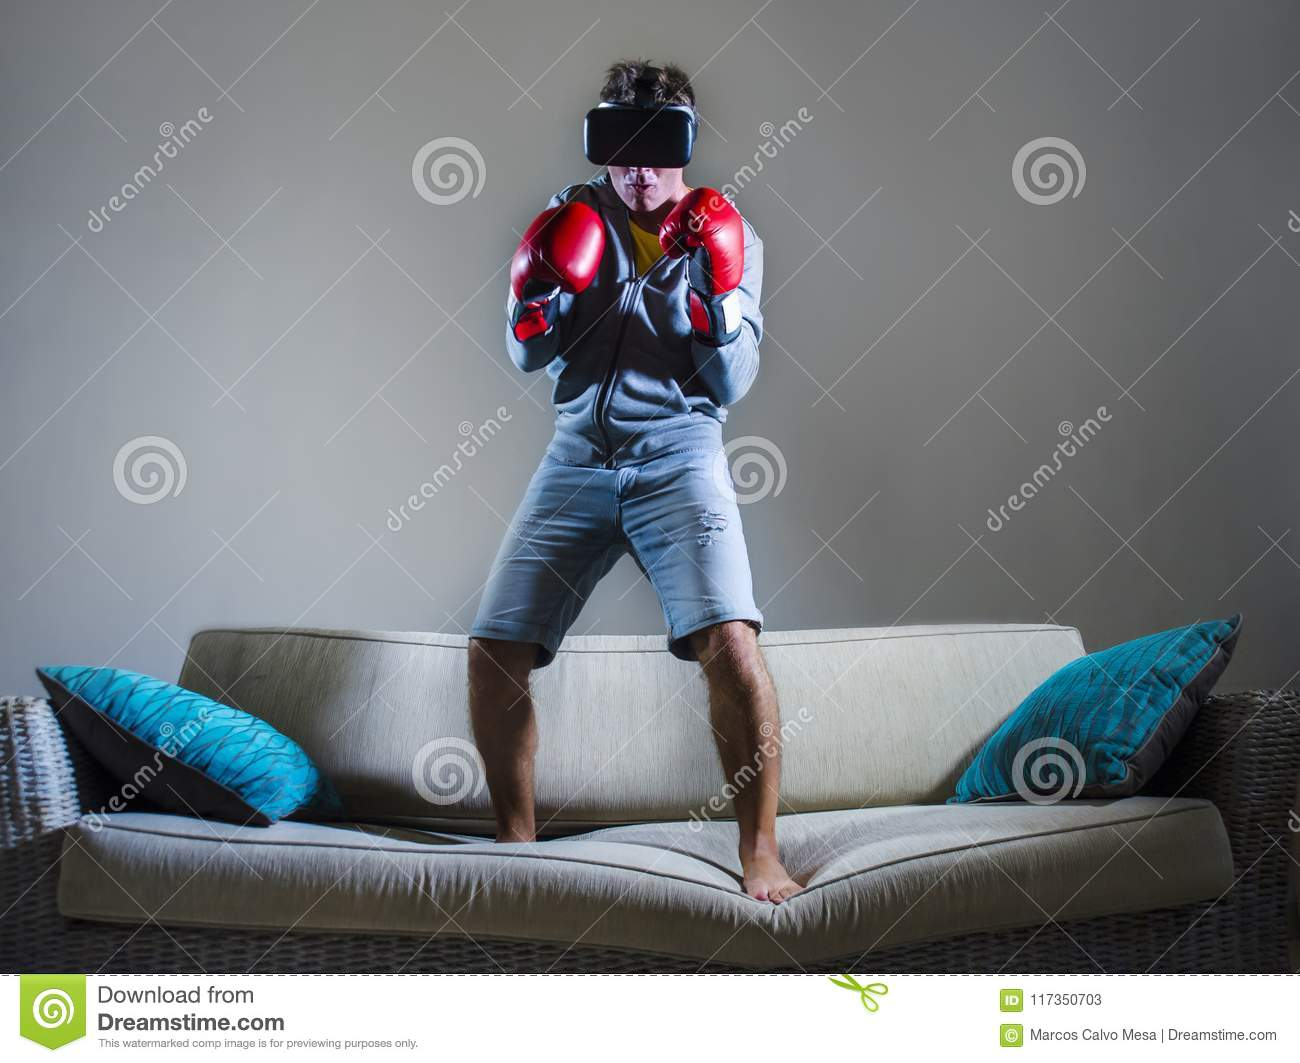 4d3412cd615 Young gamer man using VR goggles headgear and boxing gloves playing  simulator 3D fight video game having fun on home sofa couch enjoying  exciting virtual ...